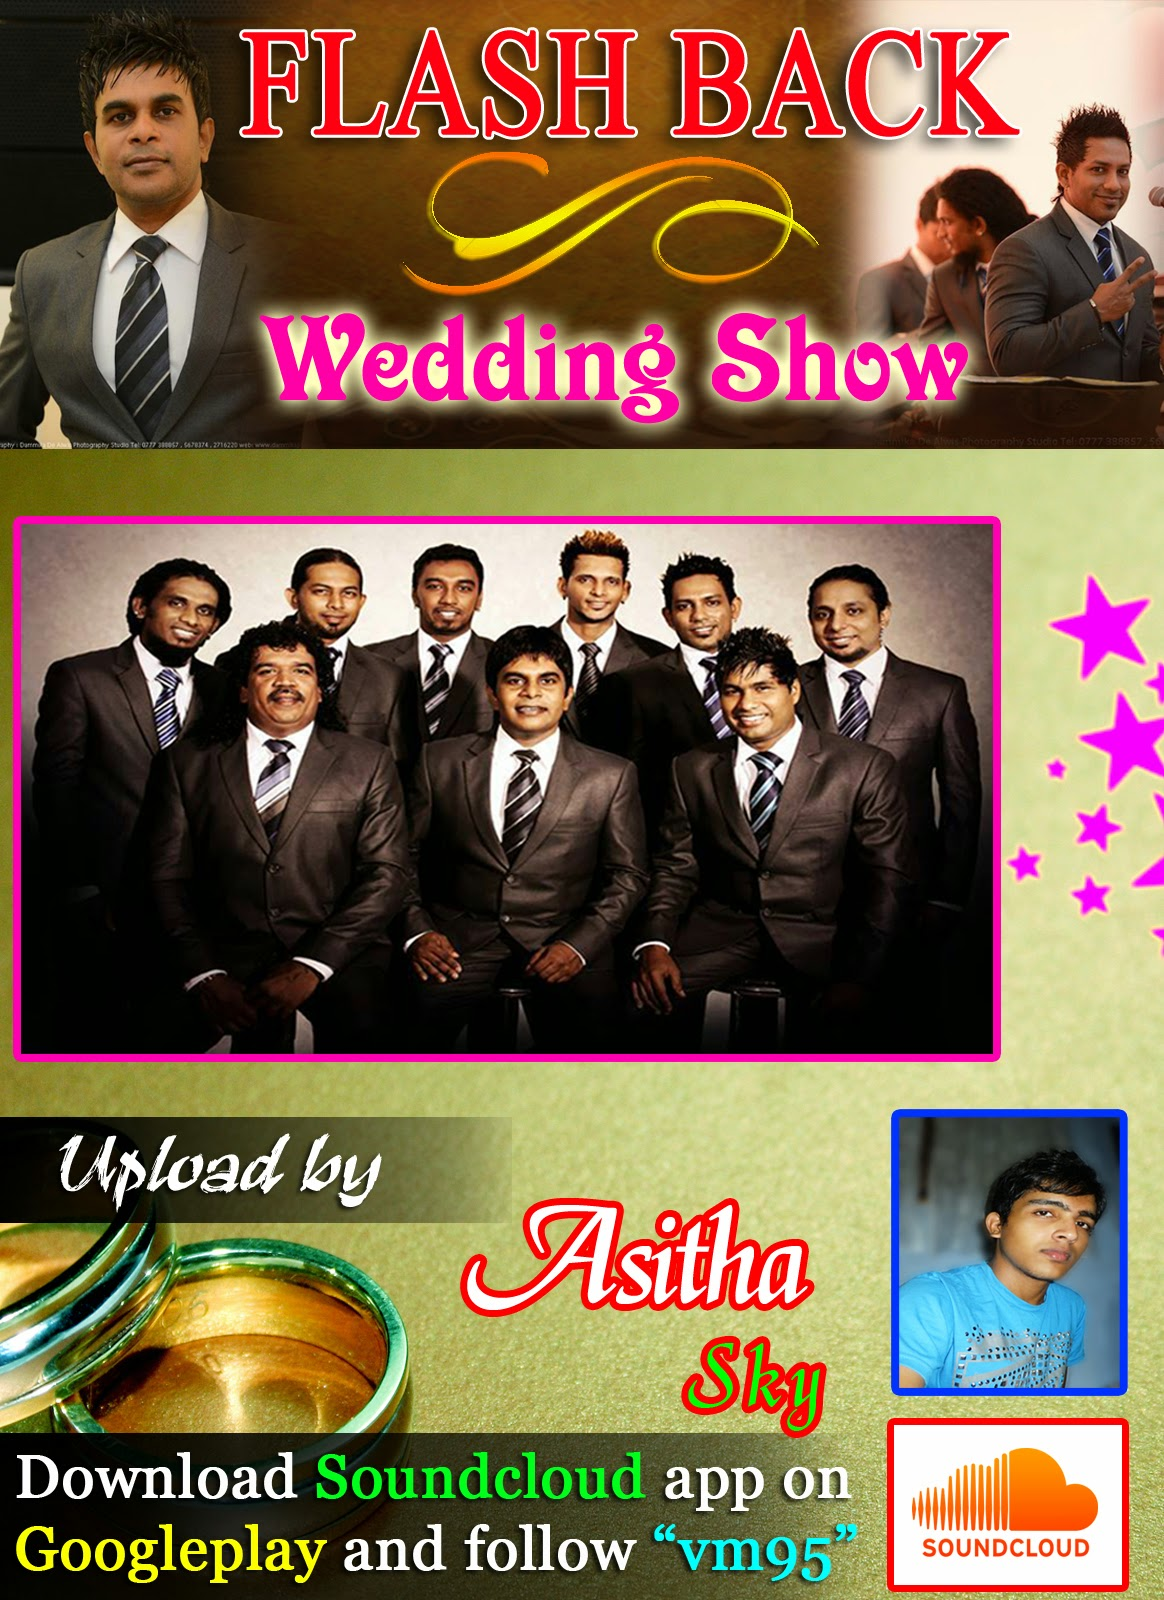 FLASH BACK WEDDING SHOW